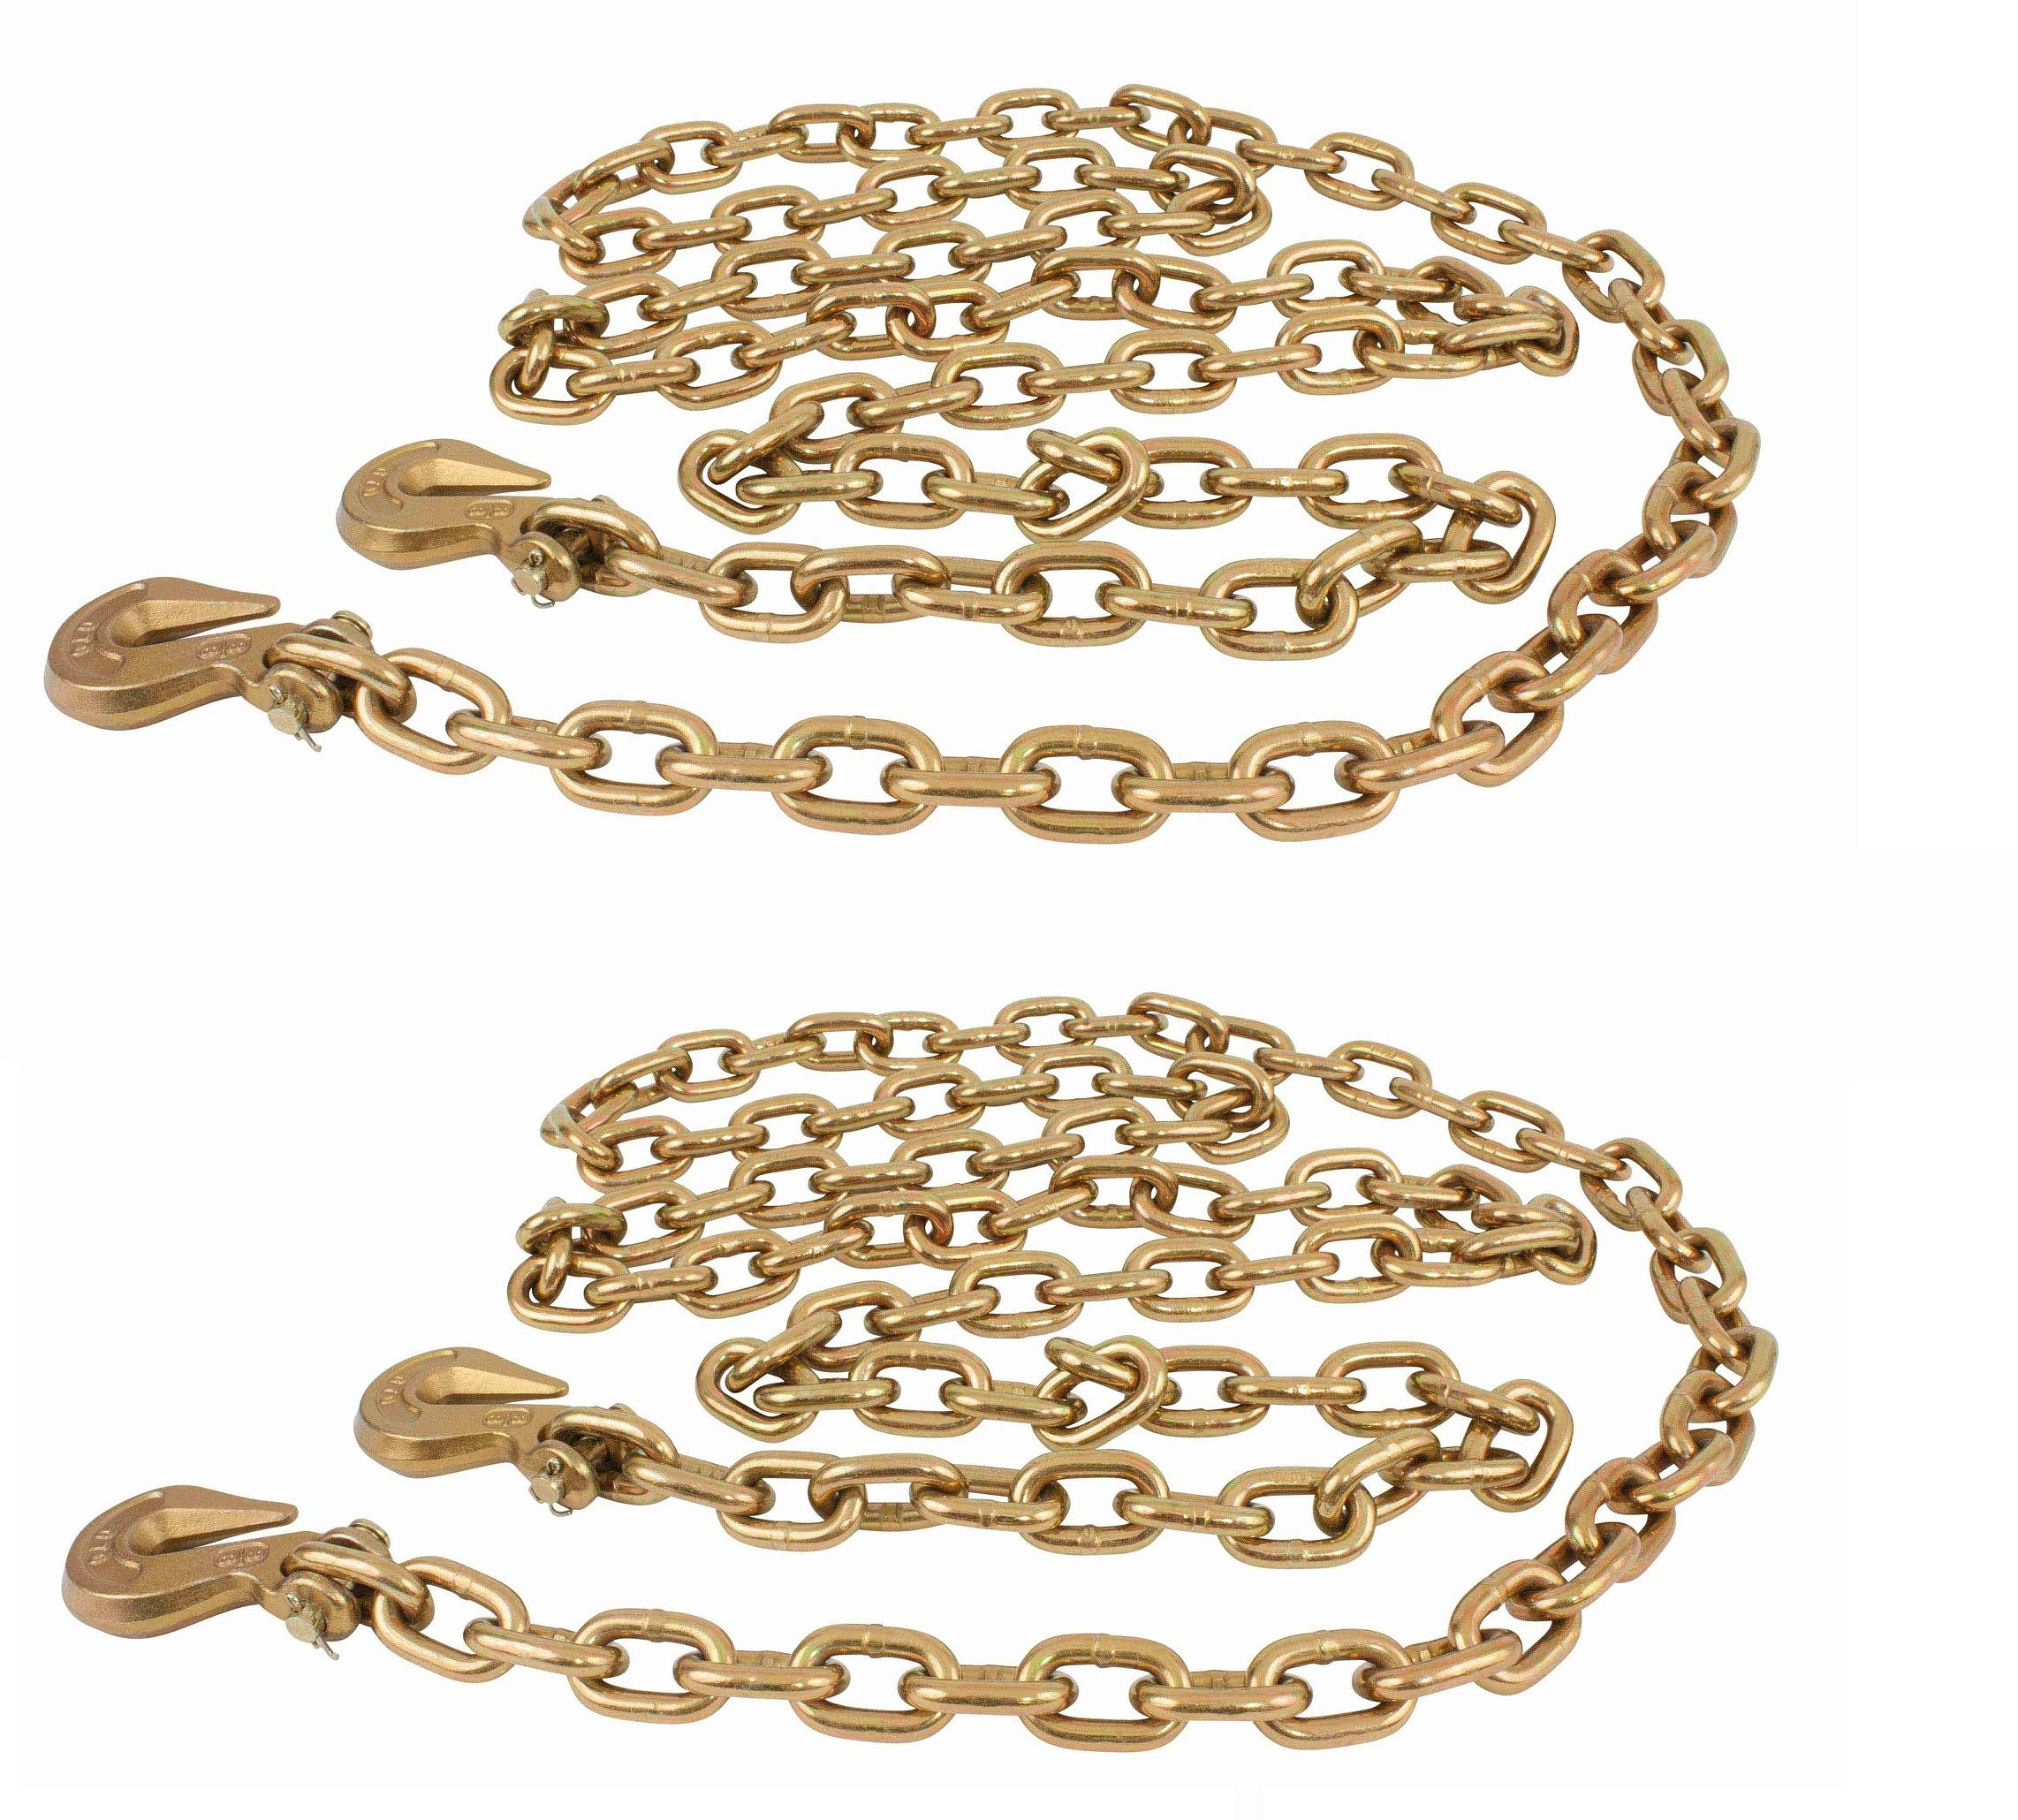 Mytee Products (2 Pack) G70 Binder Chain Grade 70 Truck 3/8 X 20 w/Grab Hooks